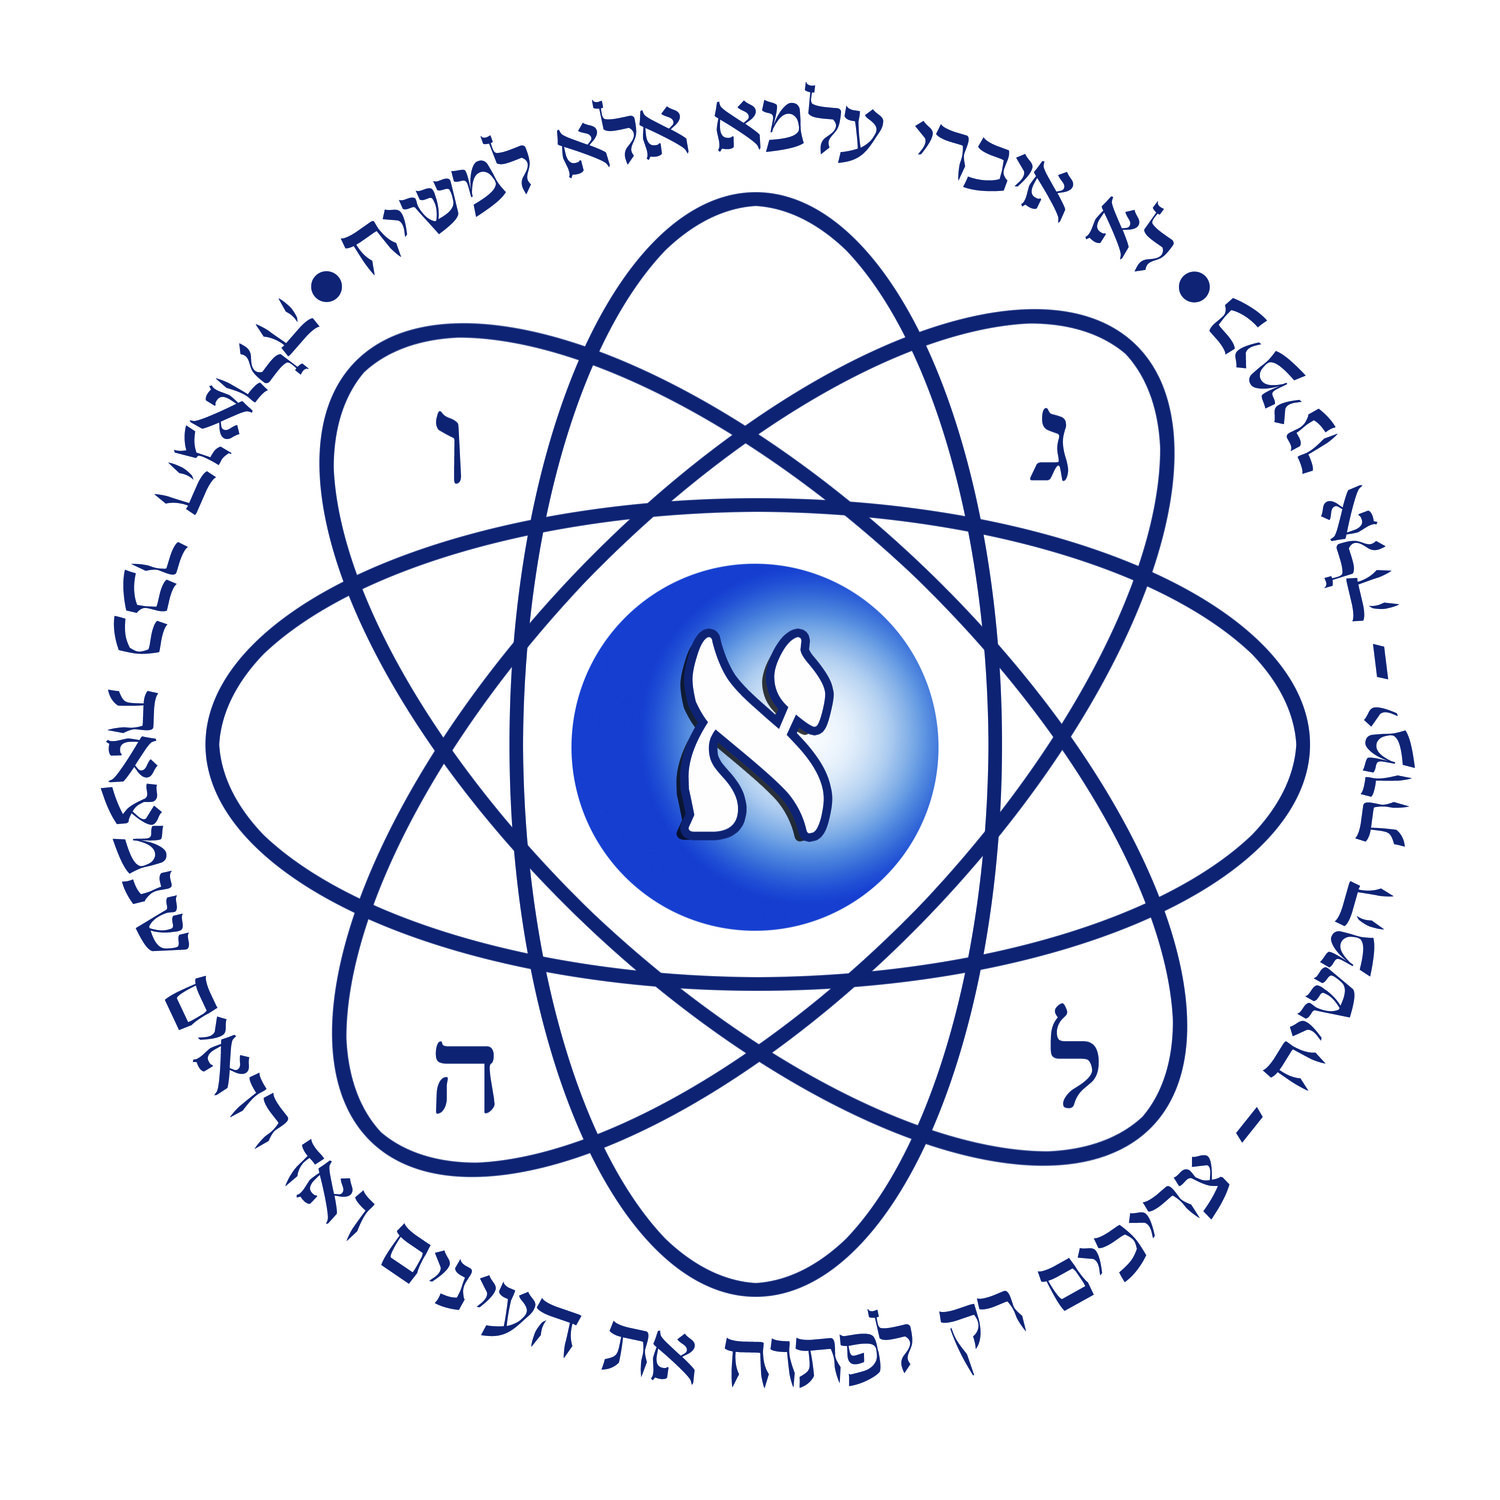 RYAL Research Institute on Moshiach and the Sciences